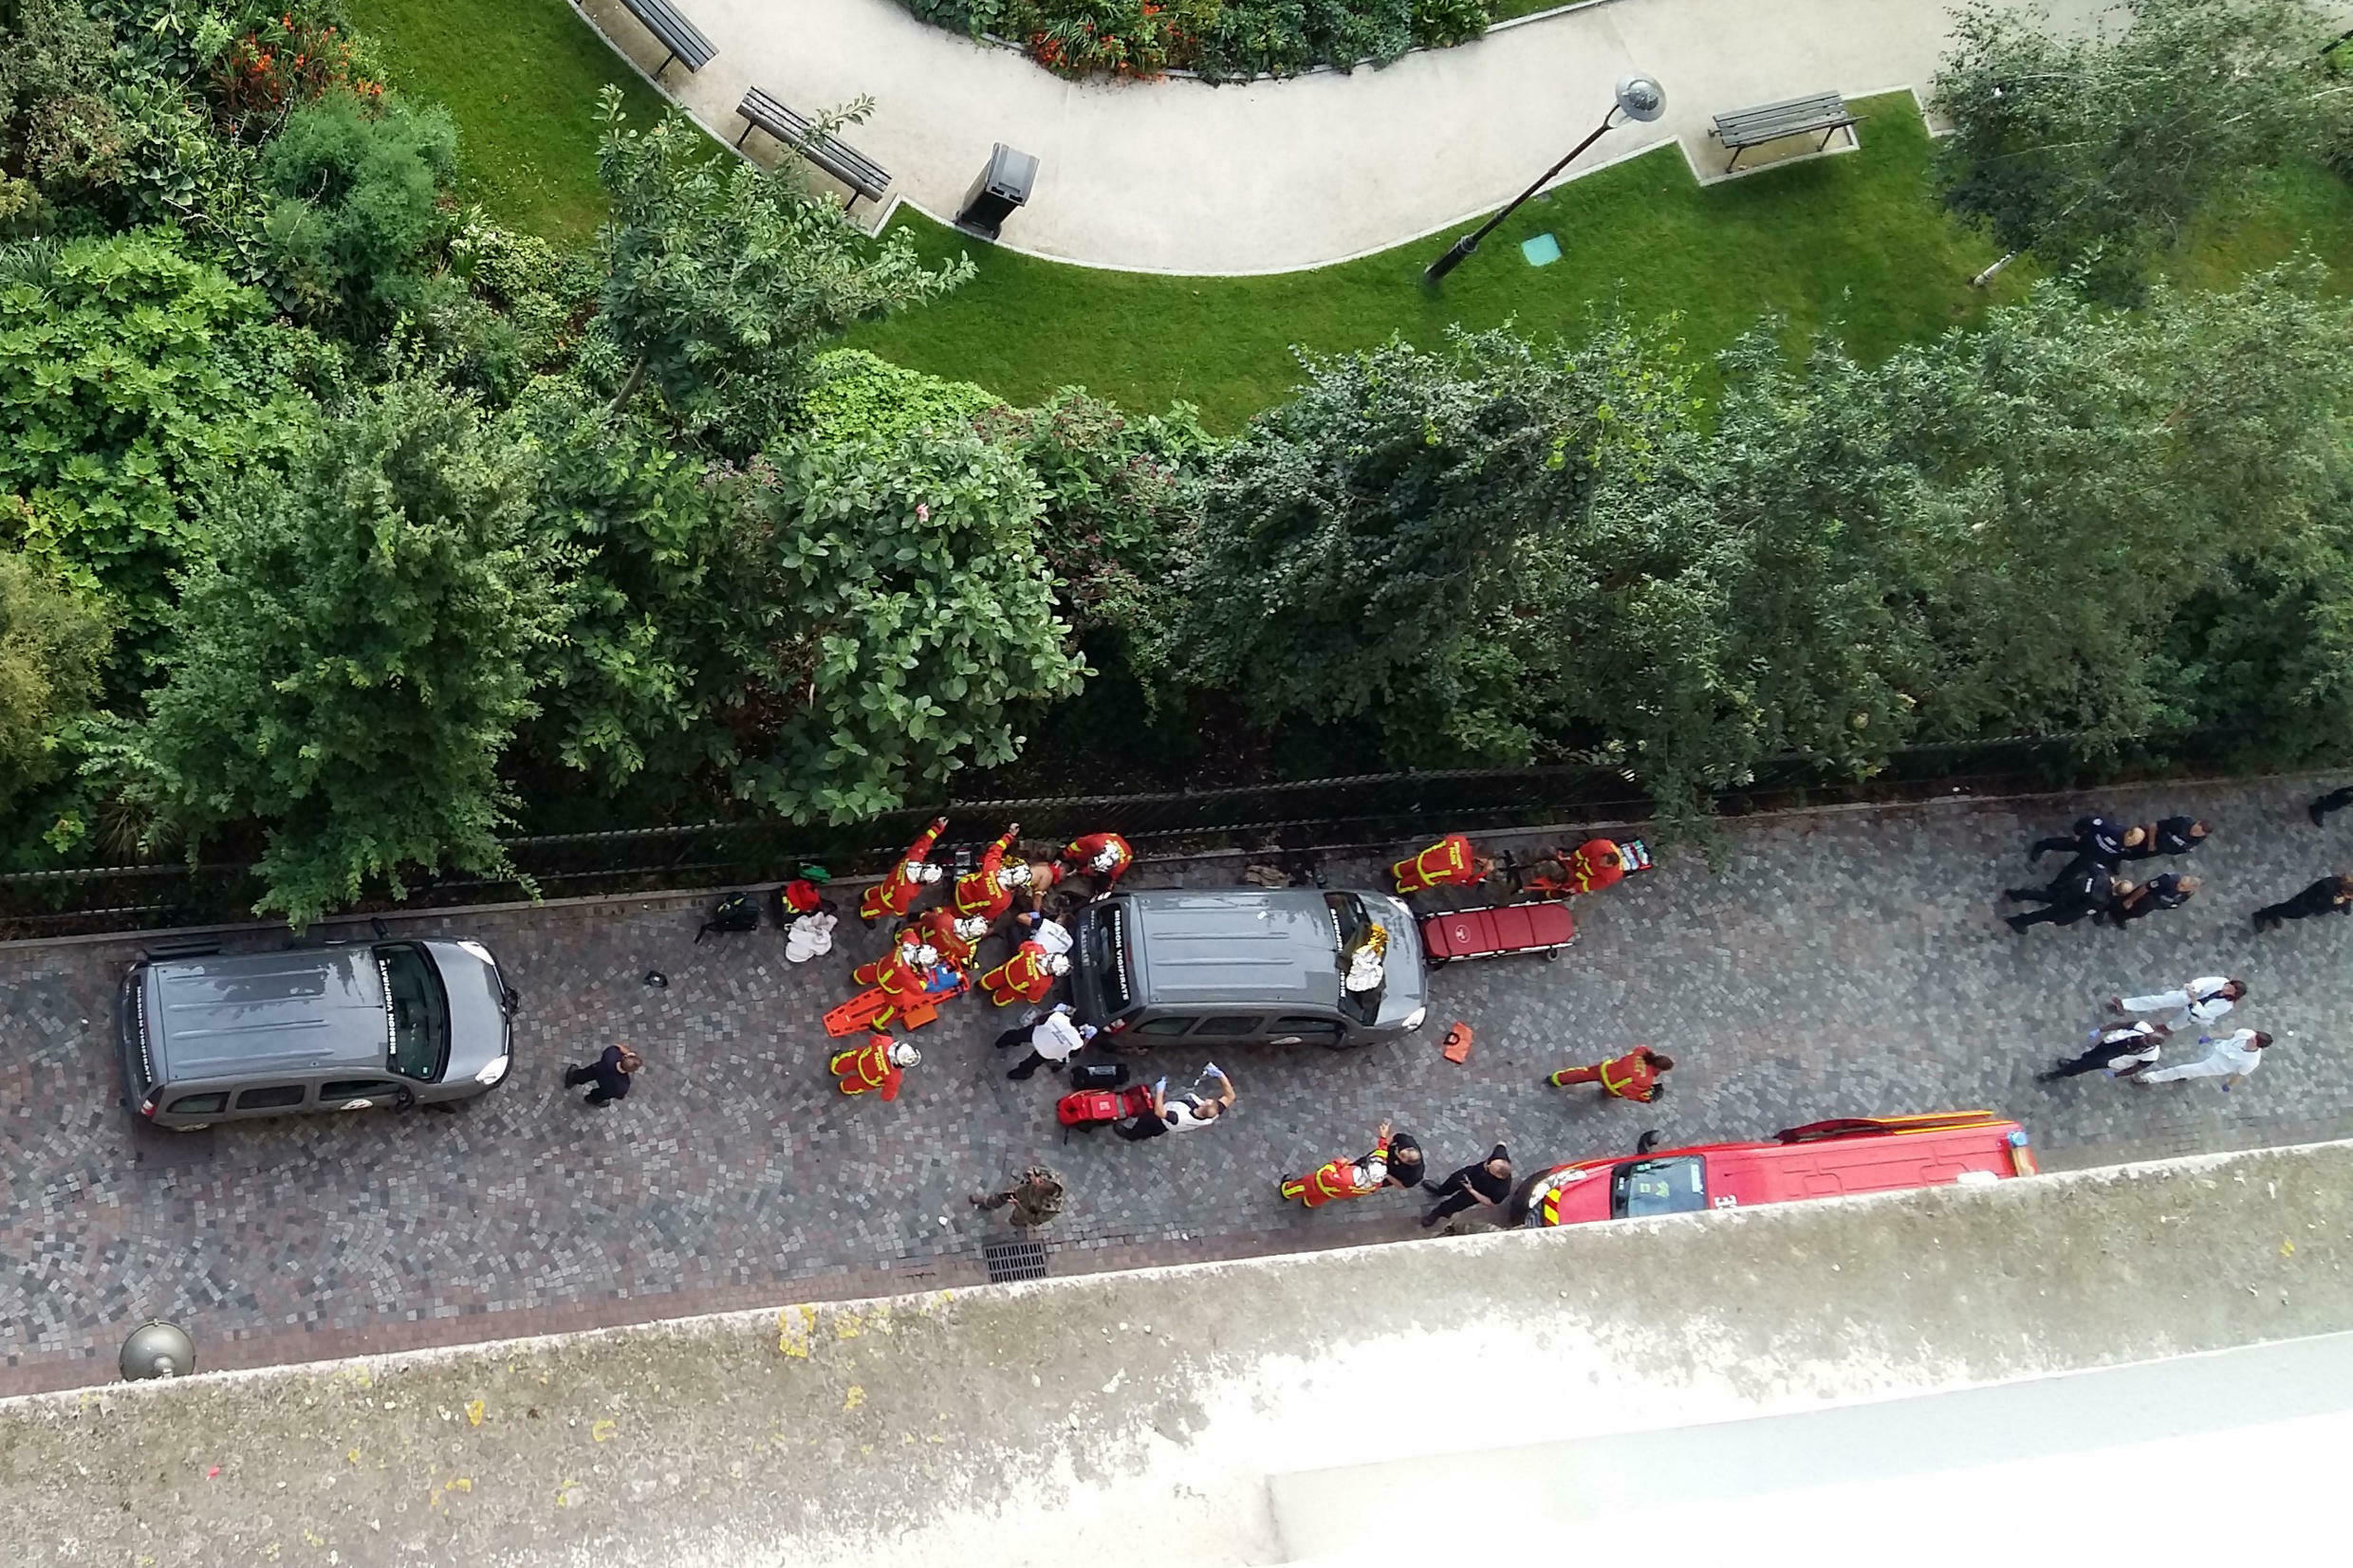 Officials and rescuers gather near vehicles after a car slammed into soldiers on patrol in Levallois-Perret, outside Paris on Wednesday.